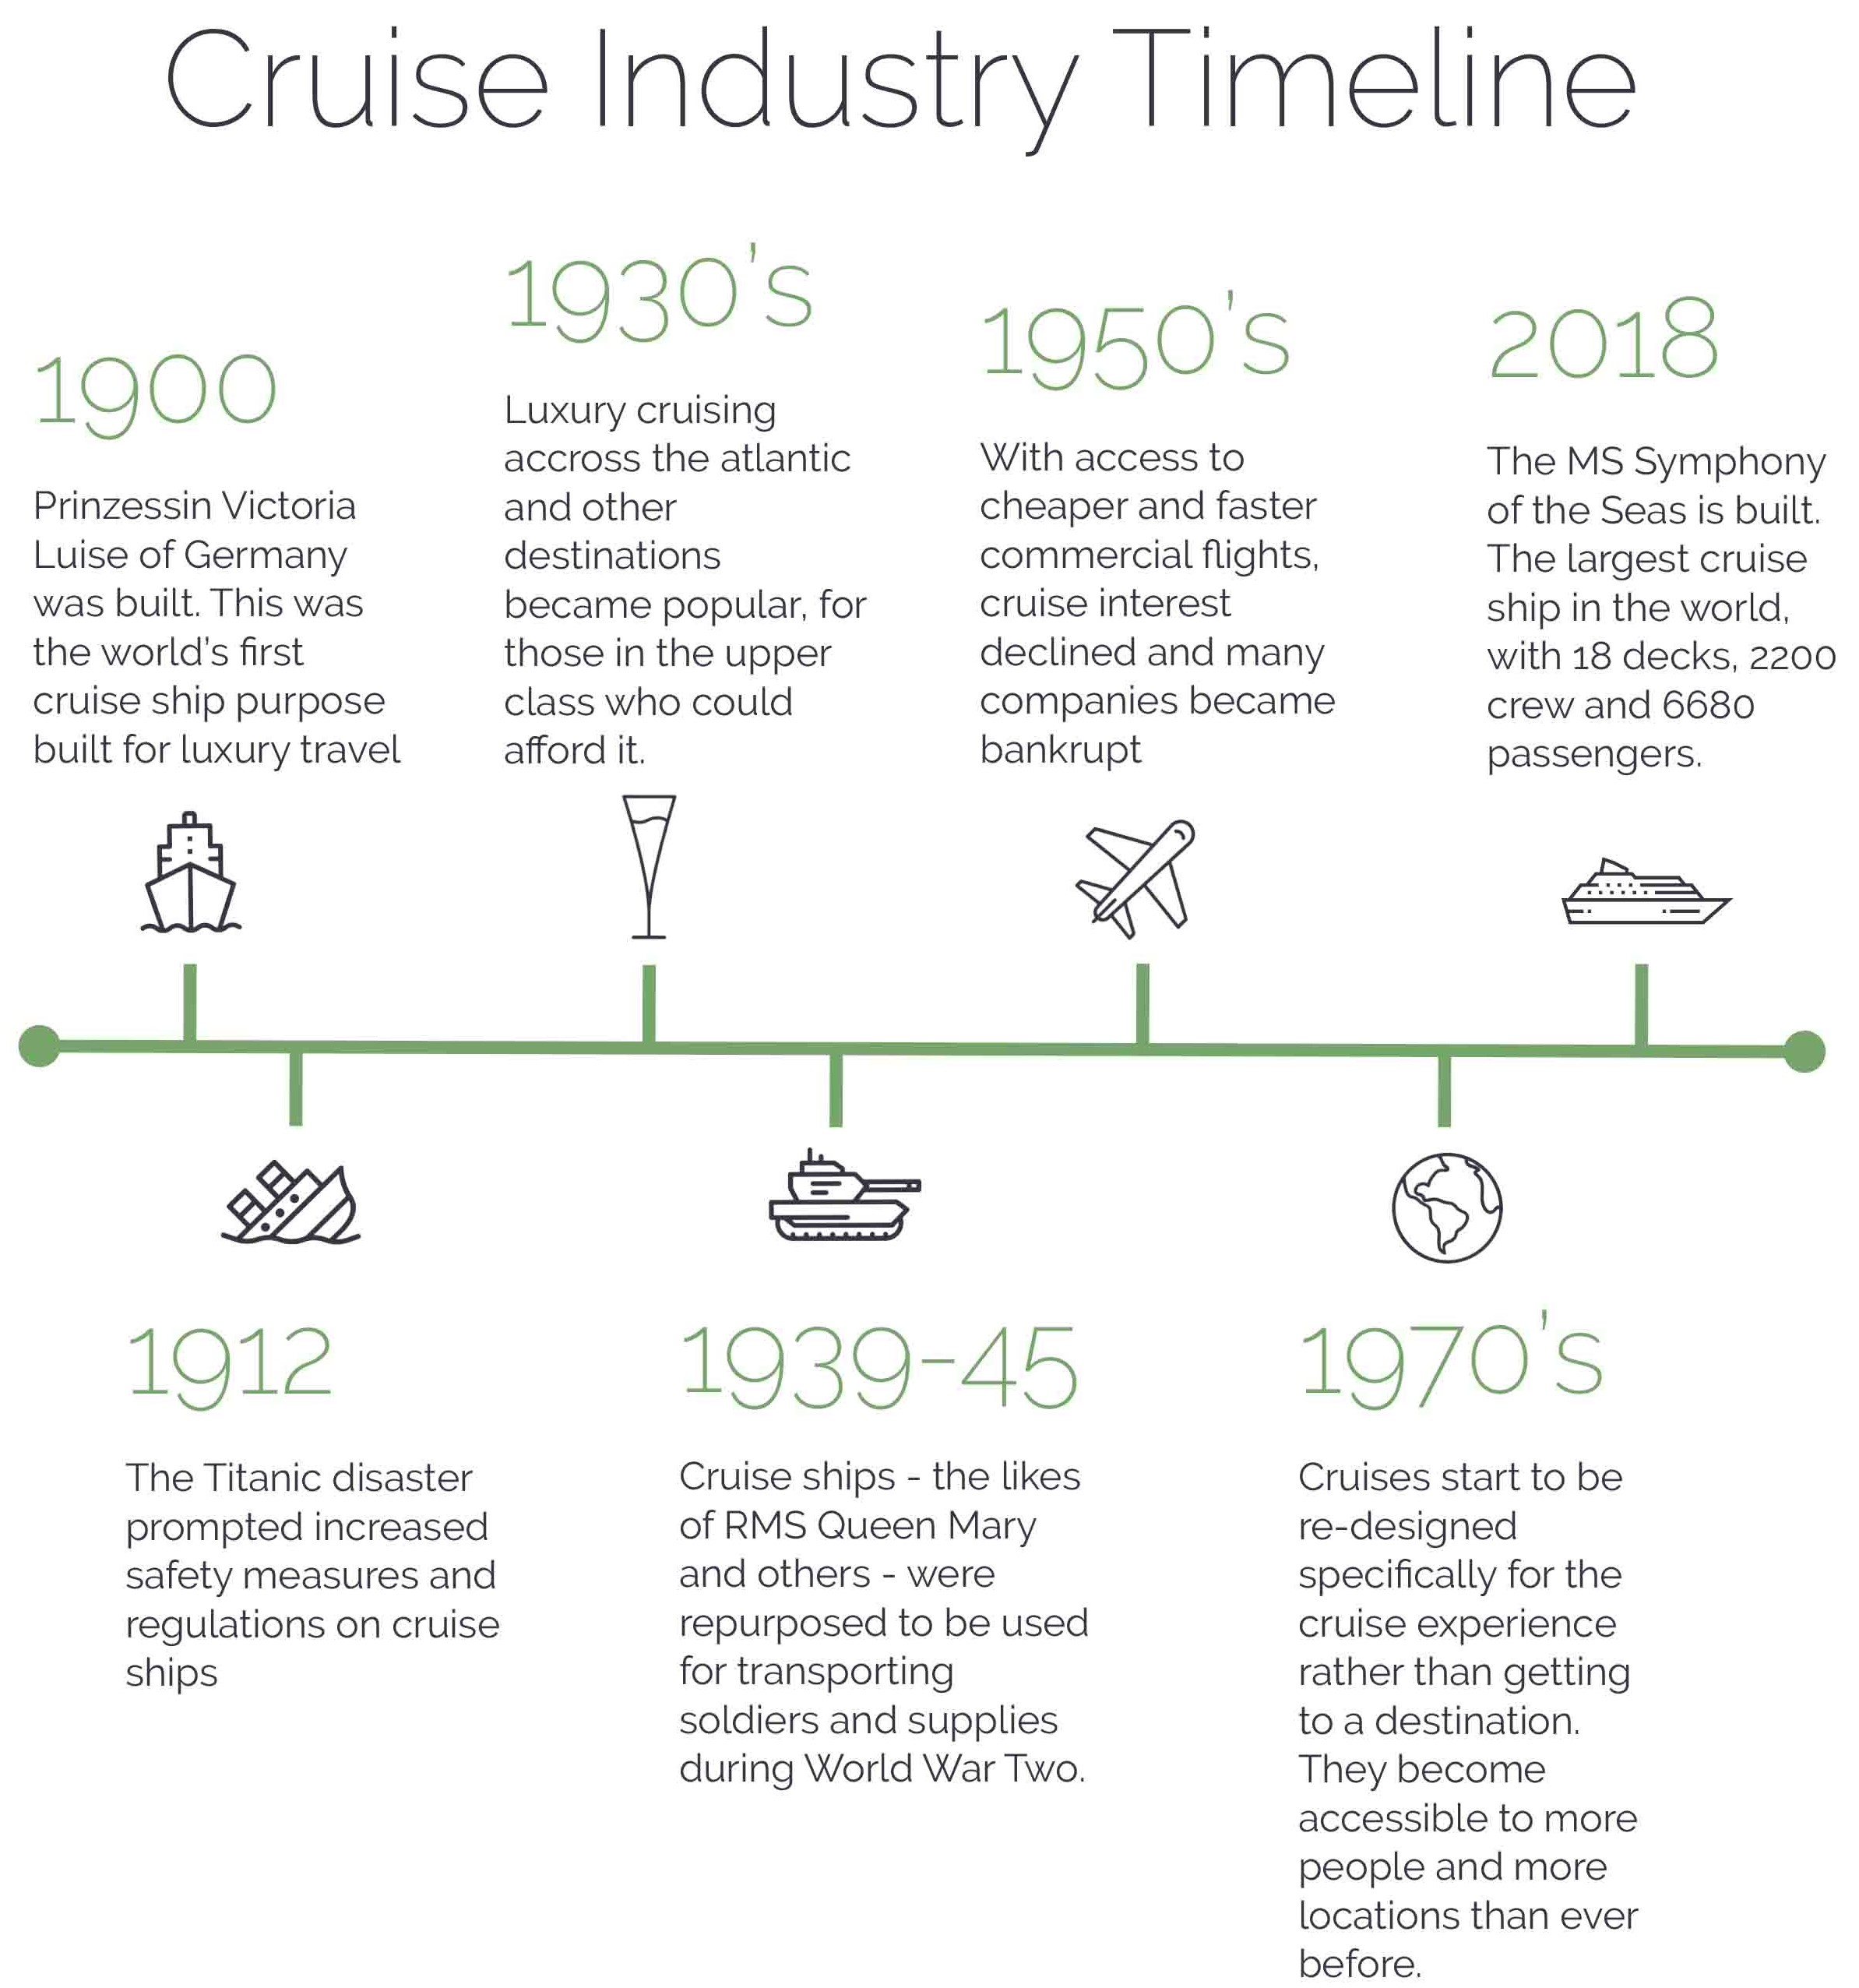 Cruise industry Timeline